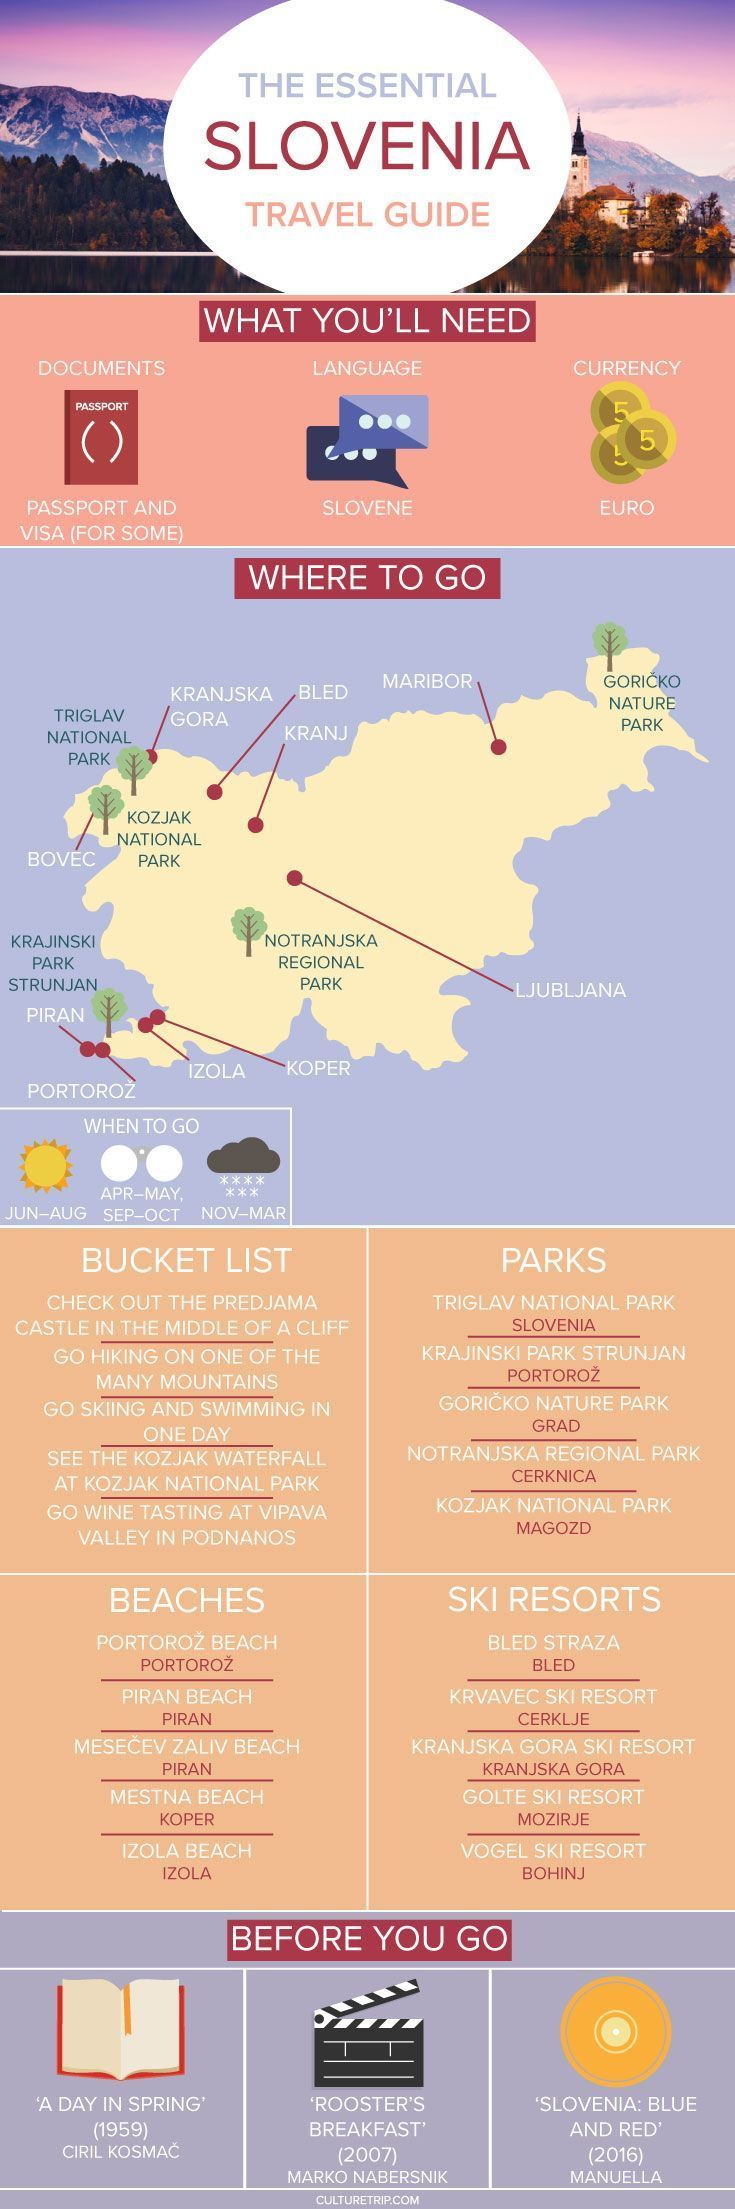 The Essential Travel Guide to Slovenia Infographic